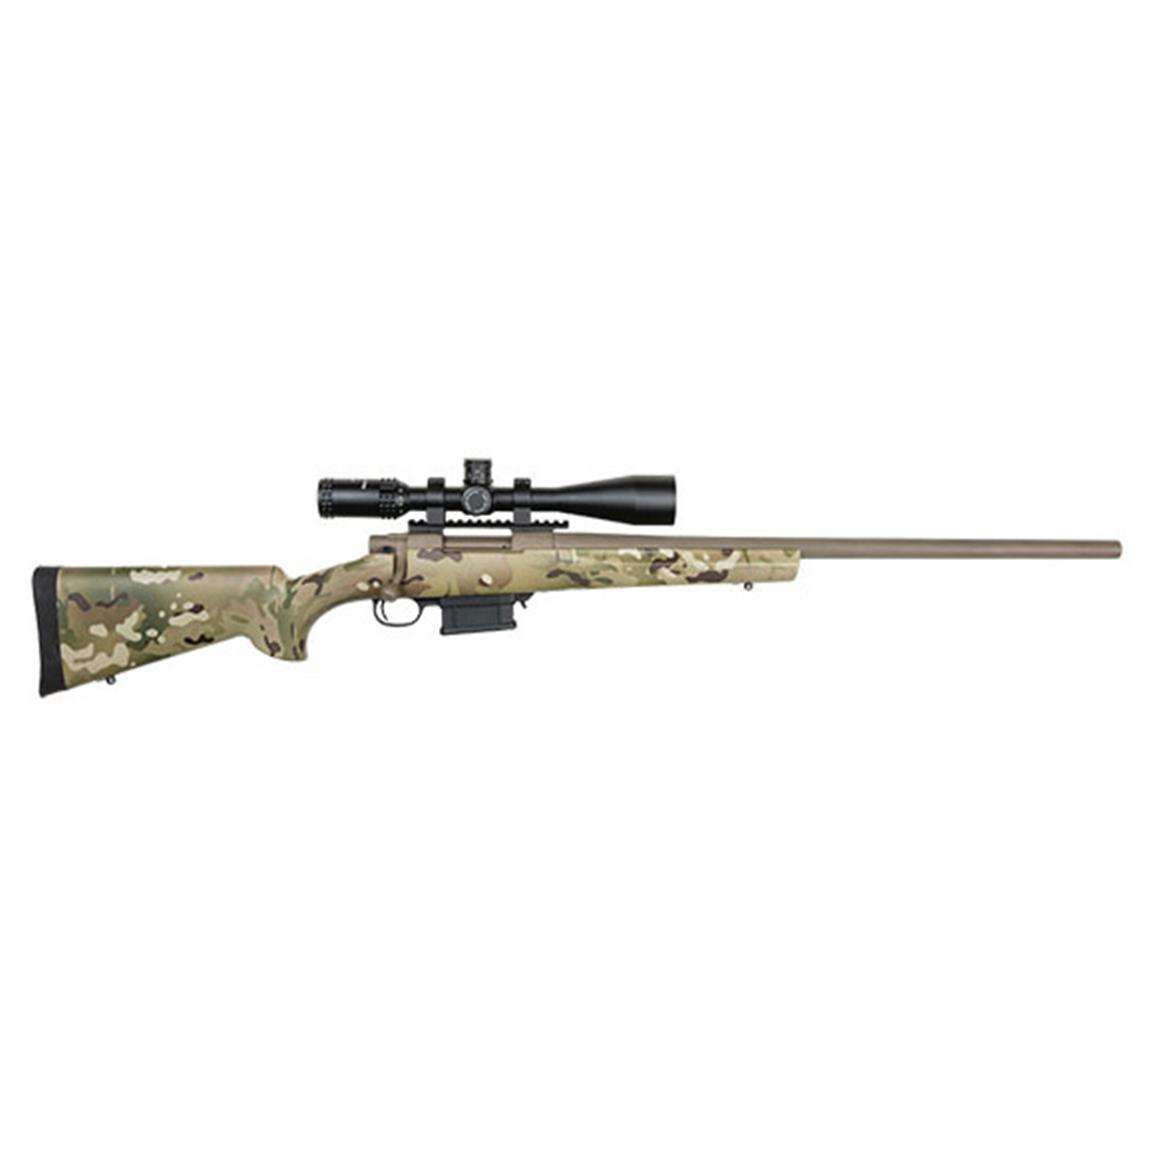 LSI Howa Multicam Package, Bolt Action, 6.5mm Creedmoor, 4-16x44mm Scope, 5+1 Rounds